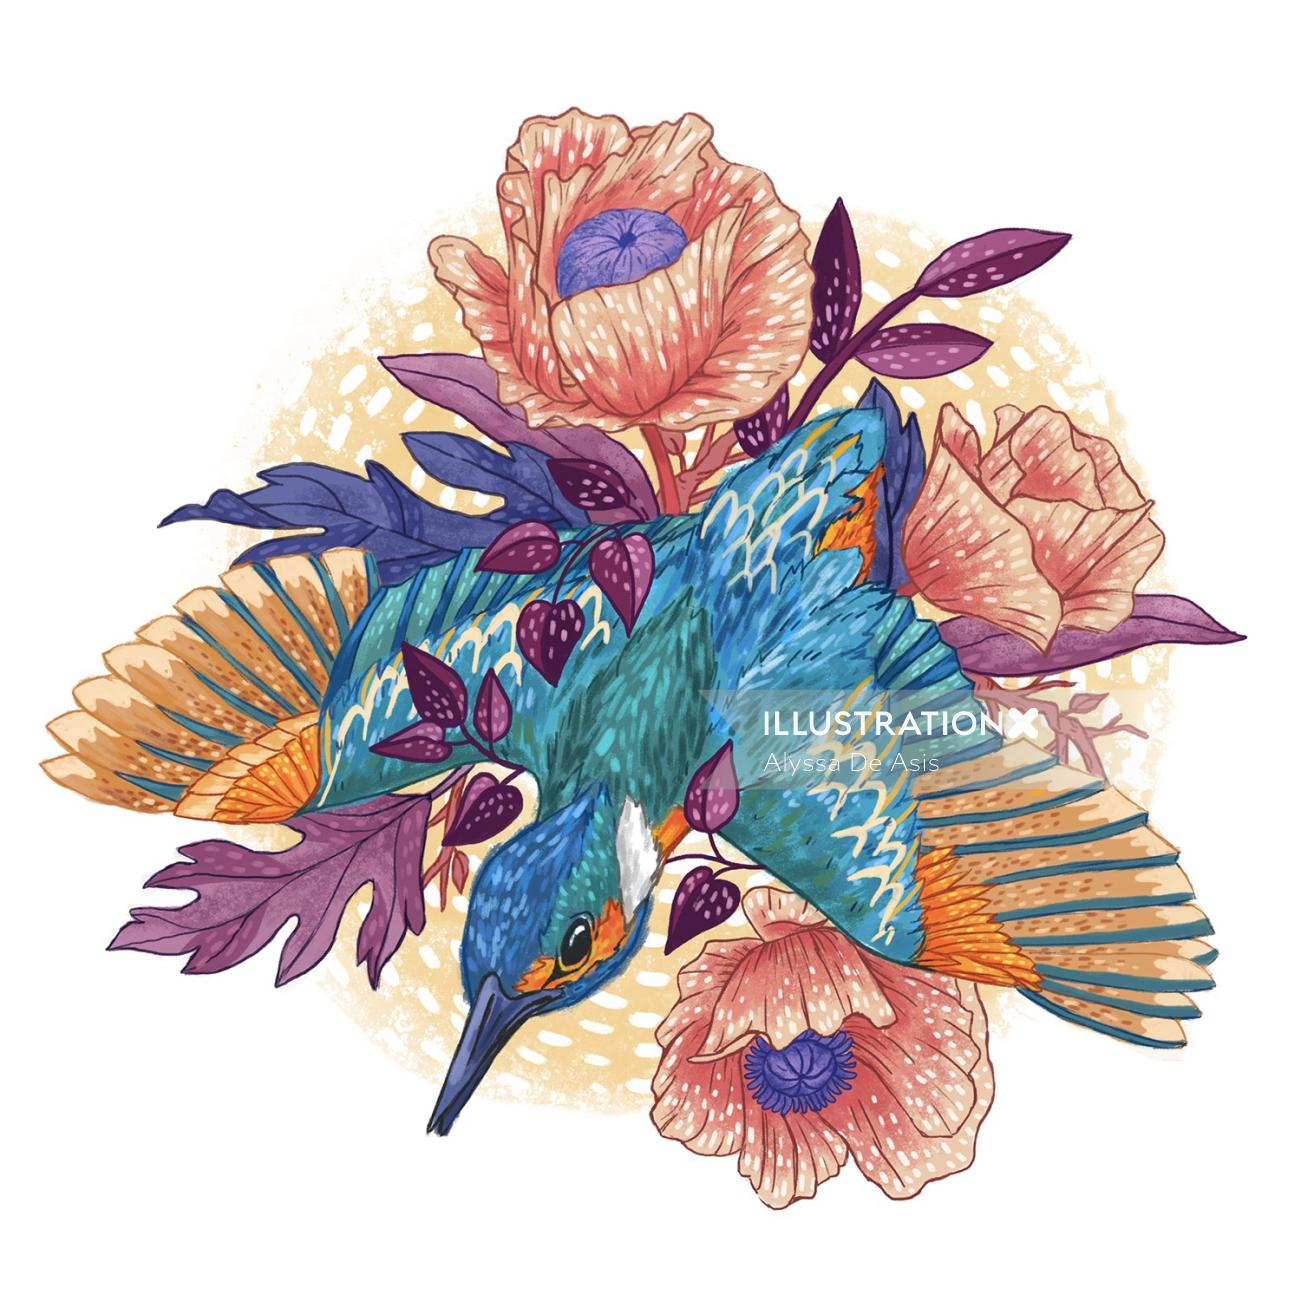 Painting of a bird flying on flowers